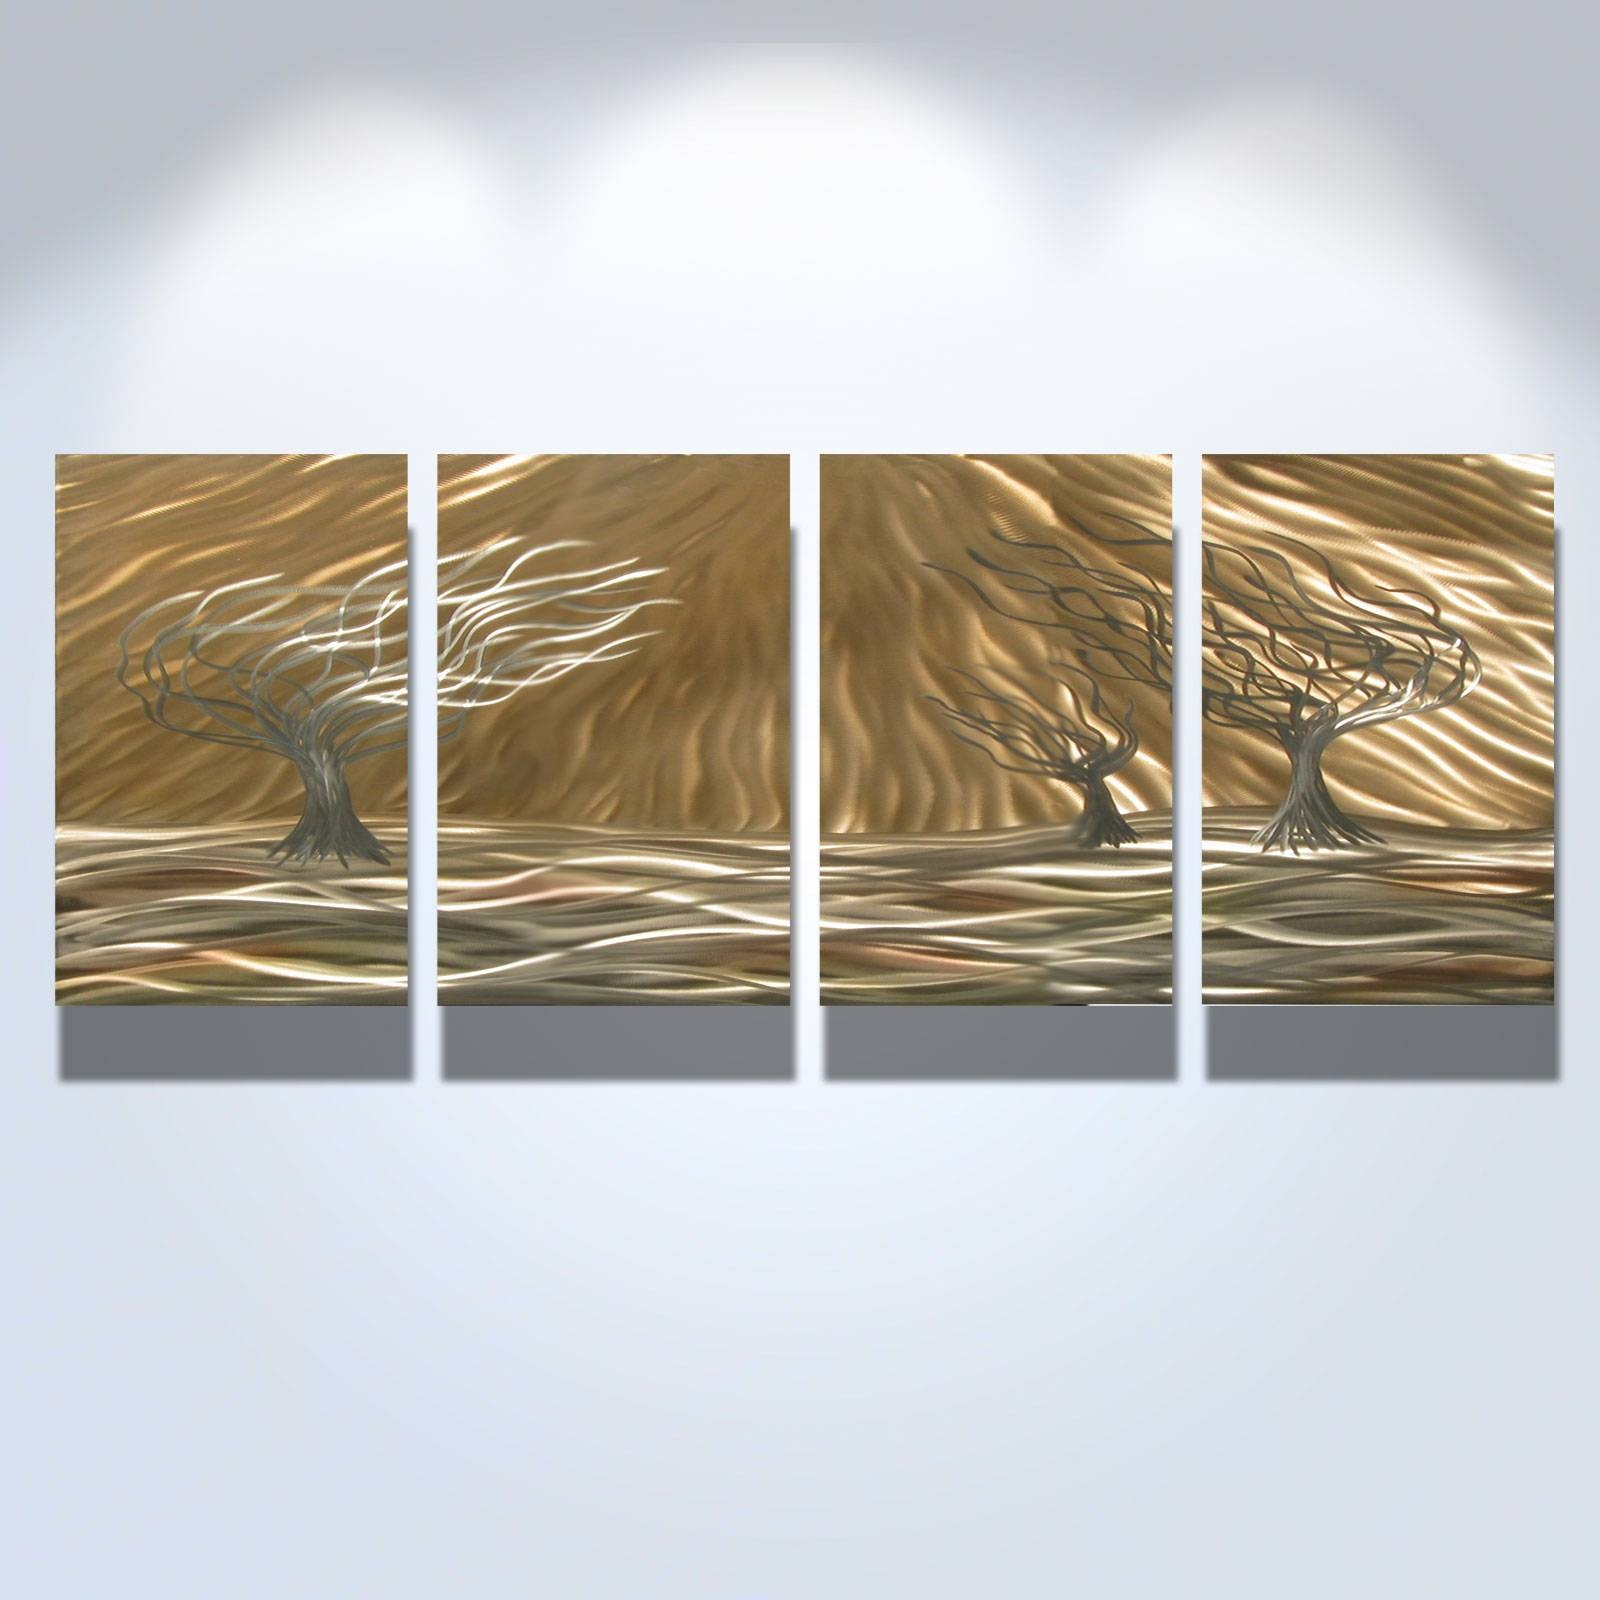 3 Trees 4 Panel – Abstract Metal Wall Art Contemporary Modern Regarding Recent Decorative Metal Wall Art Panels (View 17 of 20)